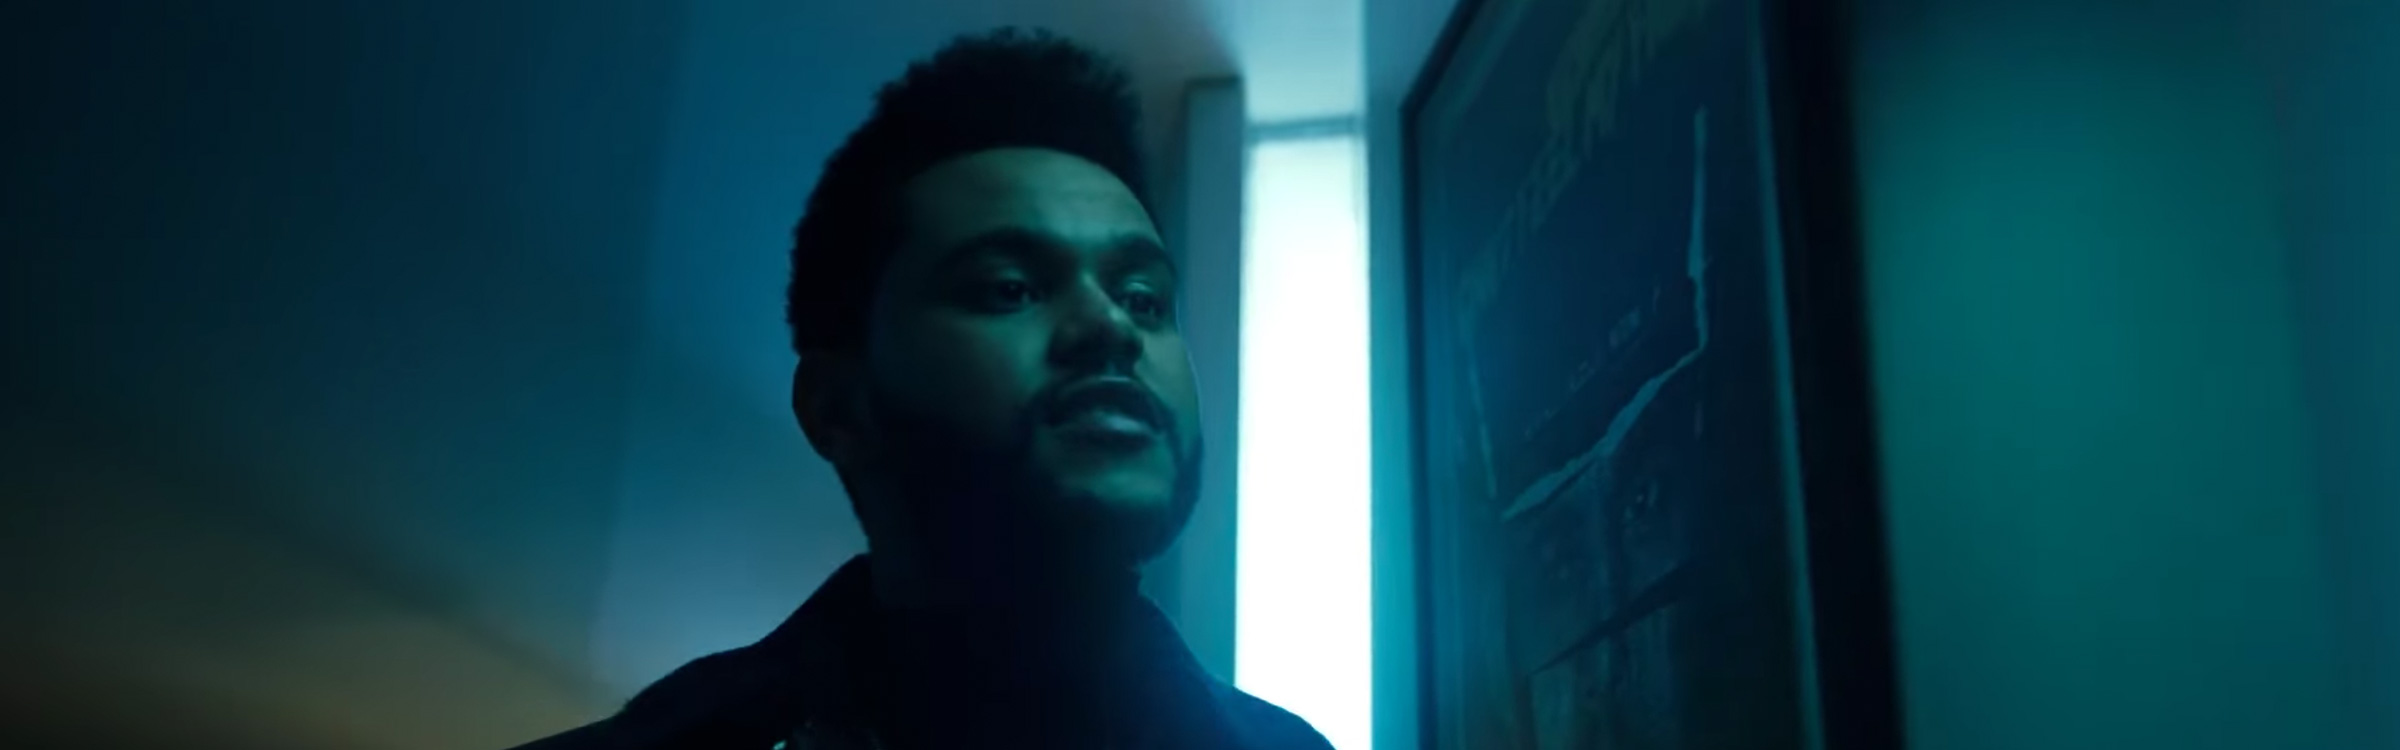 Header the weeknd staryboy